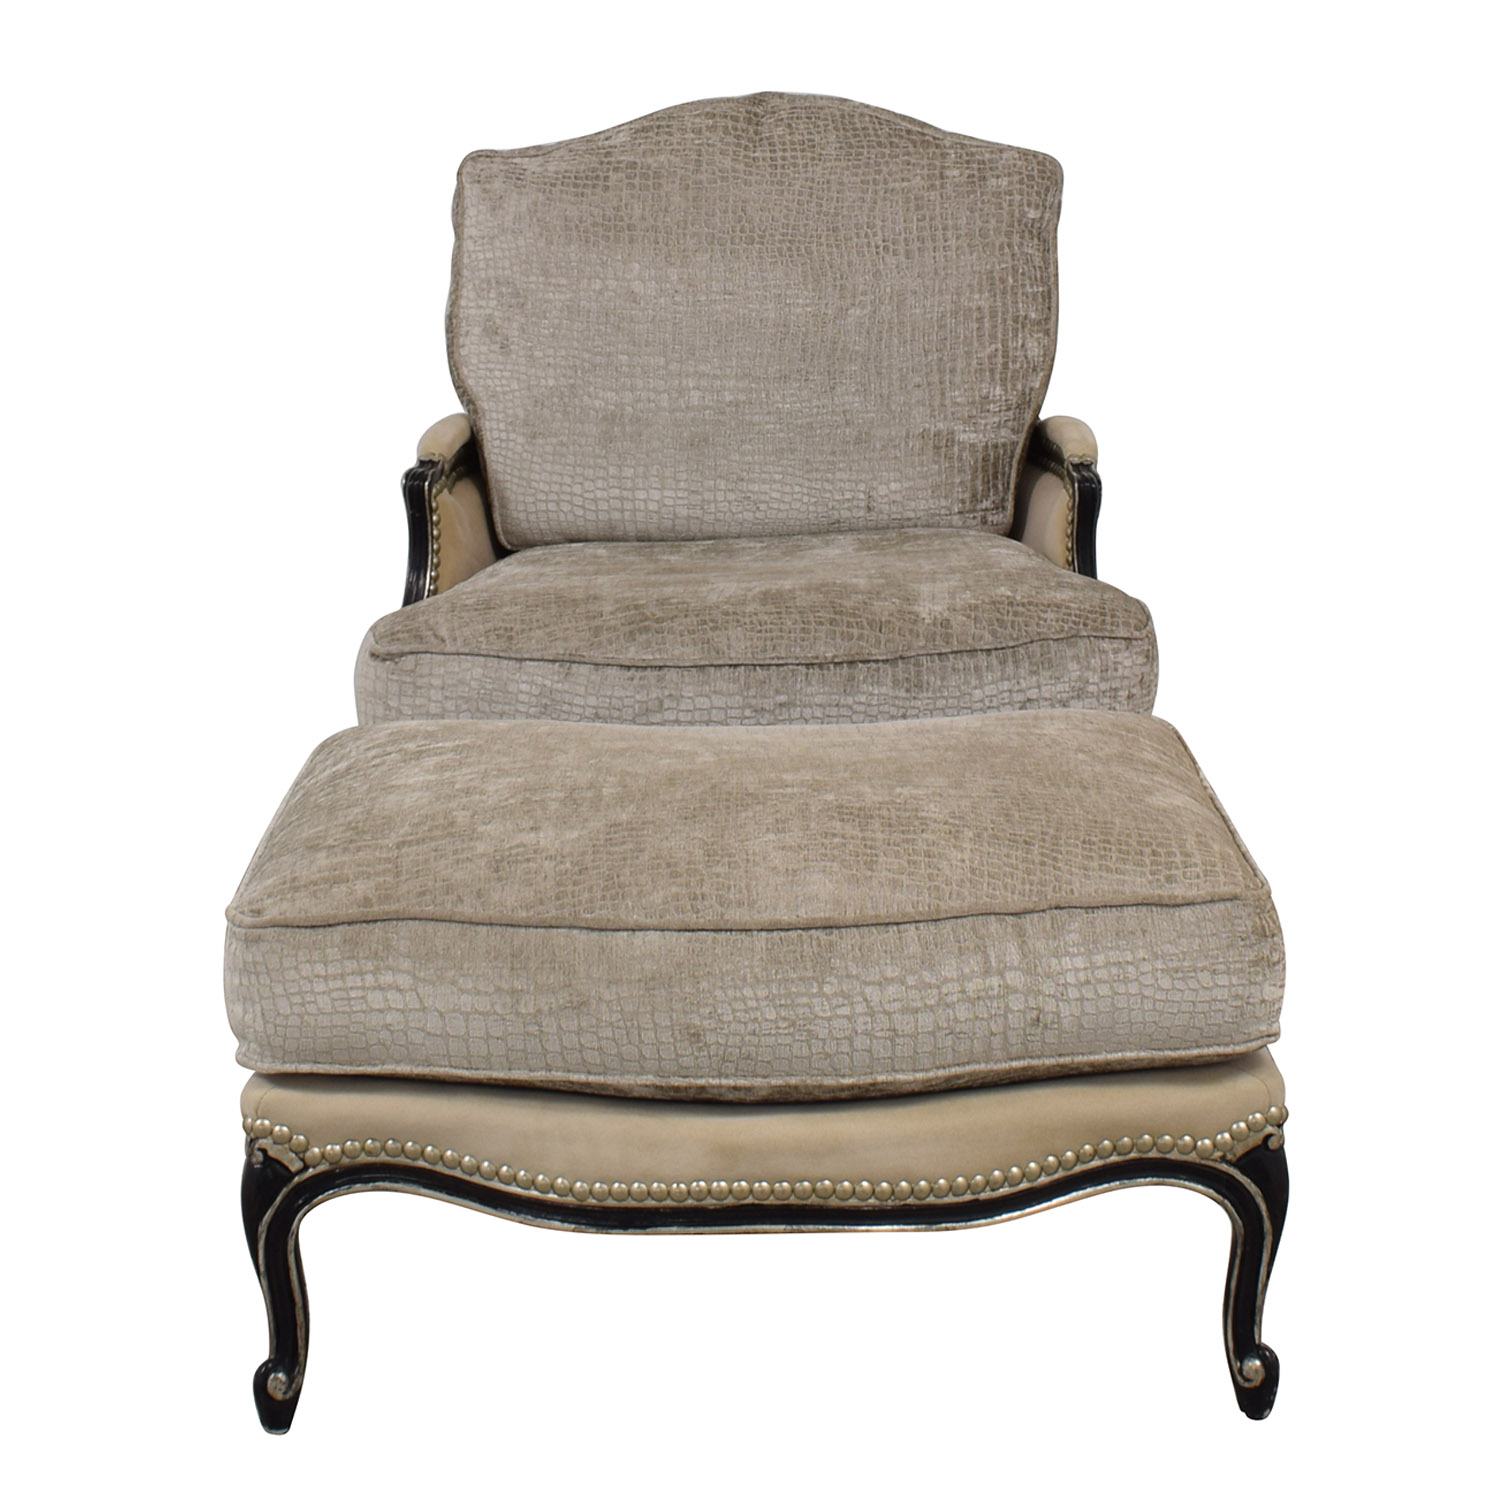 Century Furniture Century Furniture Custom Bergere Beige Nailhead Dovetailed Accent Chair used